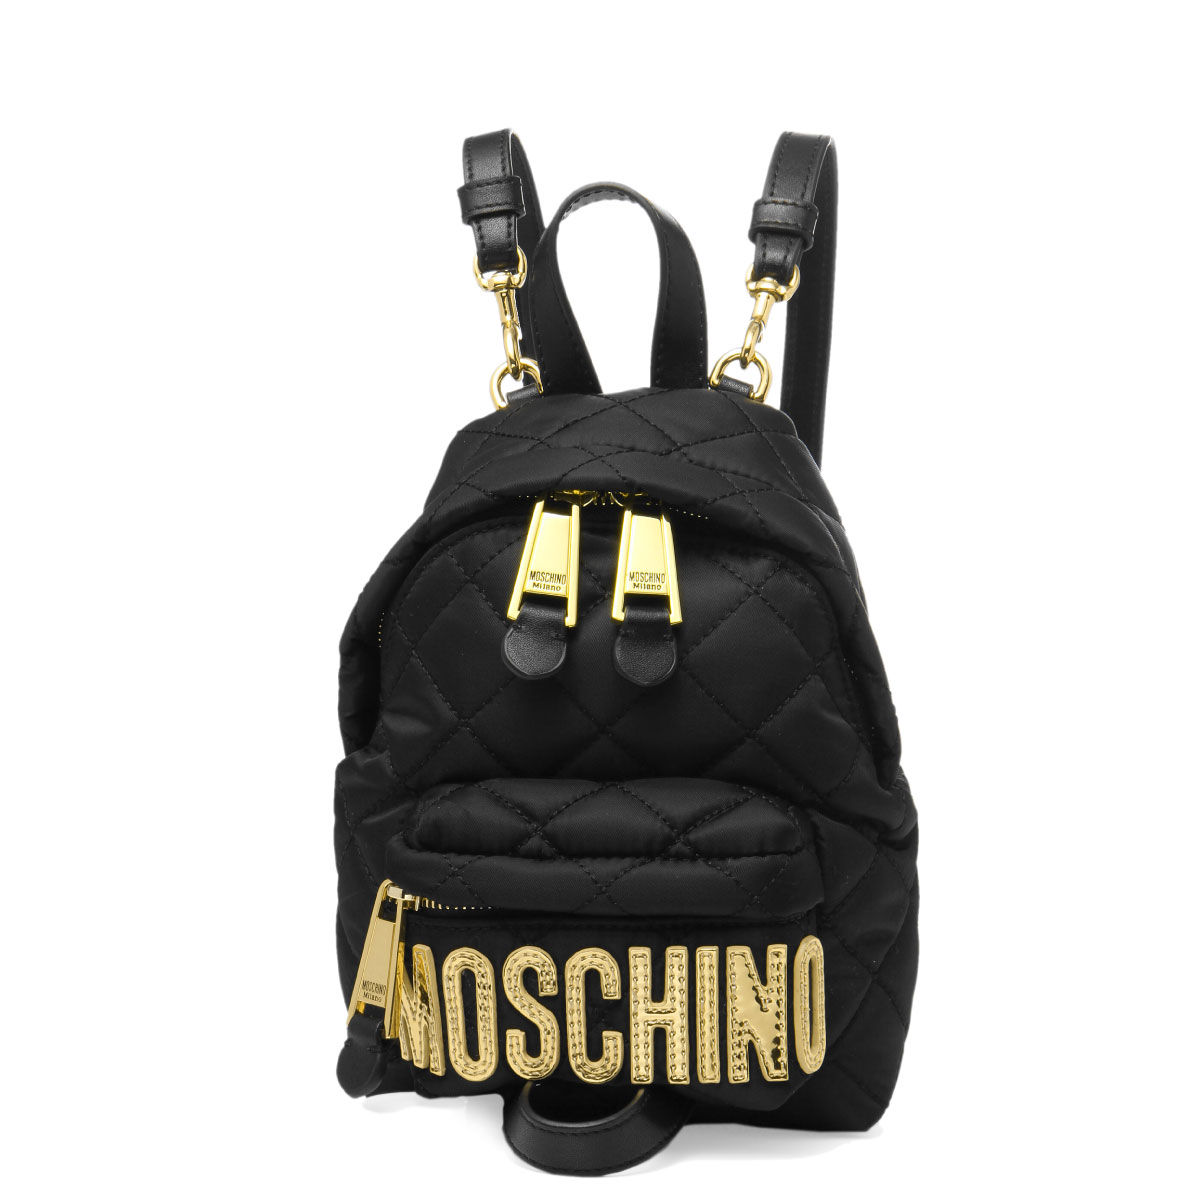 ce59797653 7609 Moschino MOSCHINO bag lady 8201 2555 shoulders backpack BLACK black  belonging to ...